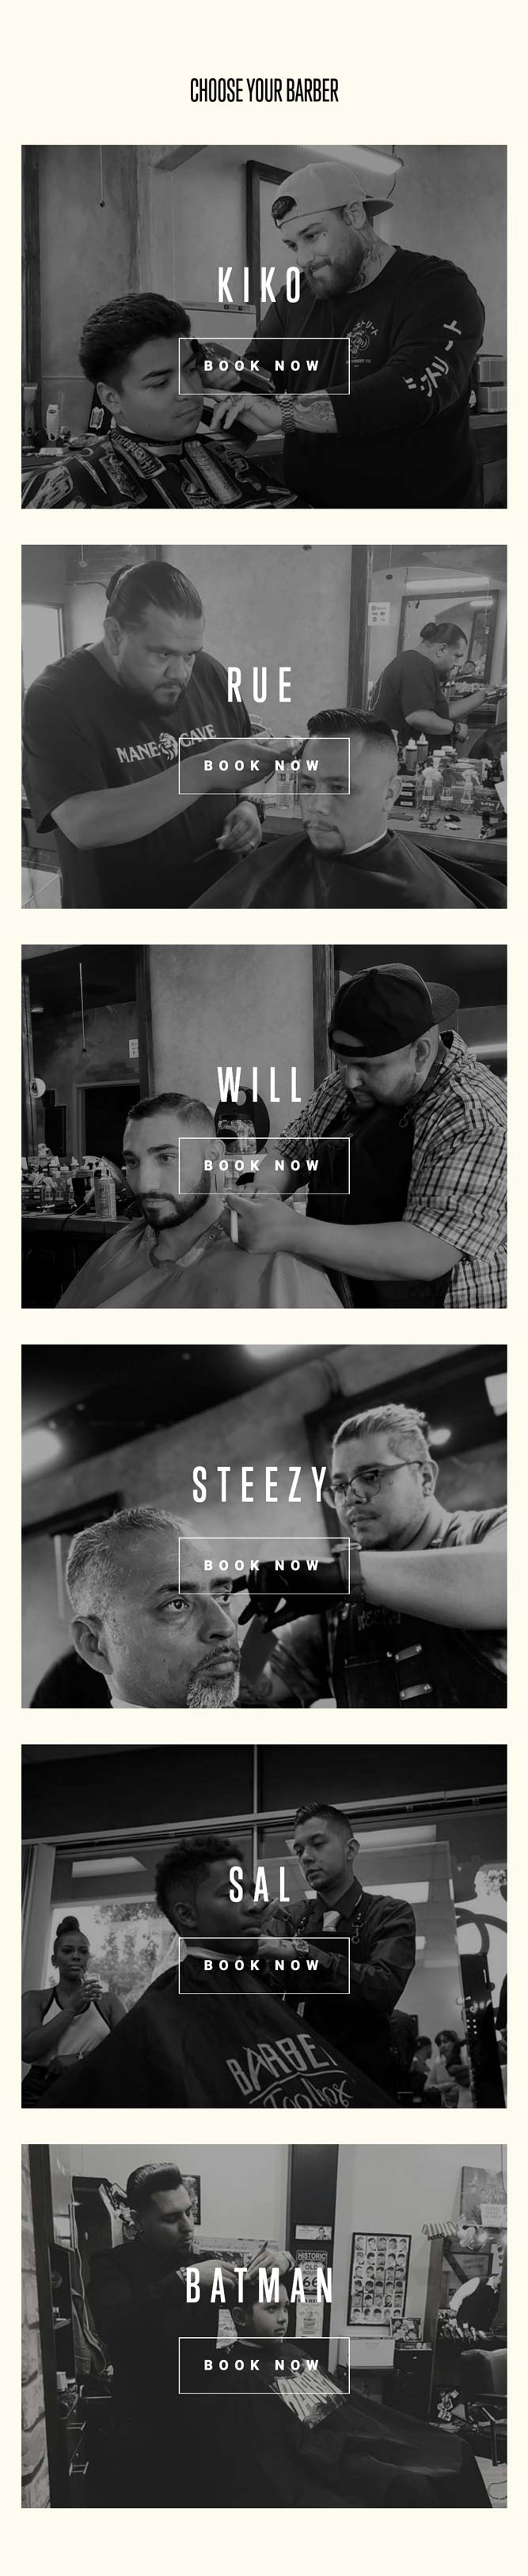 Screenshot of the barber selection screen on Mane Cave Barbershop's new website.